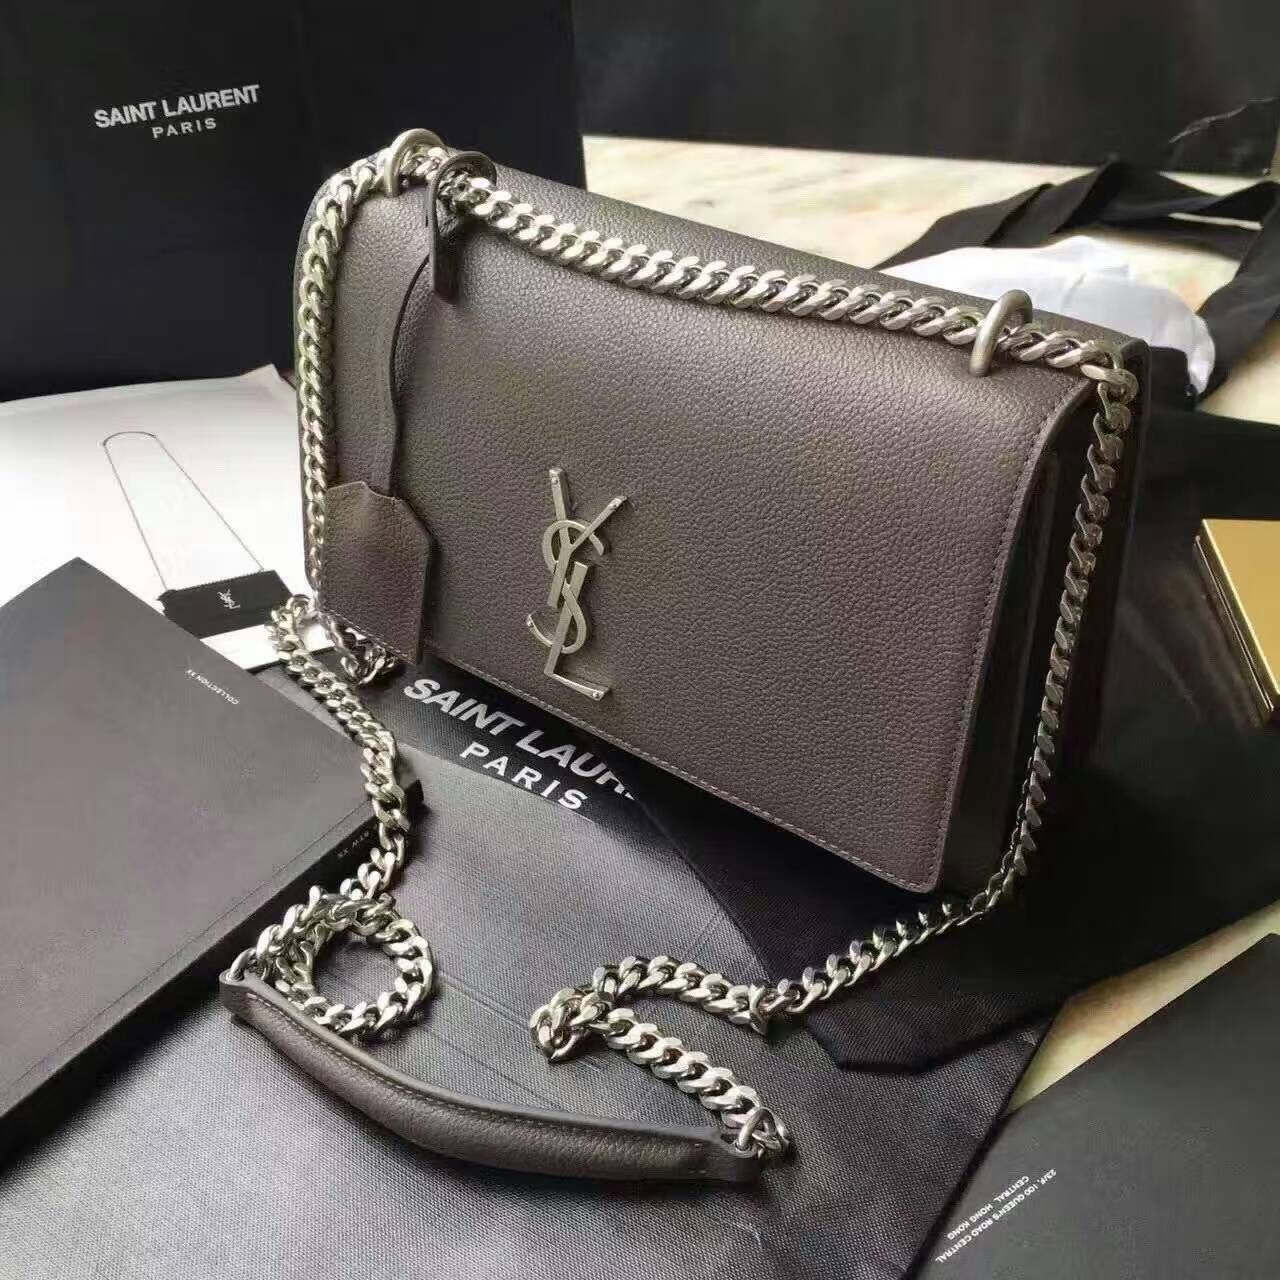 Limited Edition!2016 Saint Laurent Bags Cheap Sale-Saint Laurent Medium  Sunset Monogram Bag in Dark Anthracite Grained Leather 00bde6fdd9302